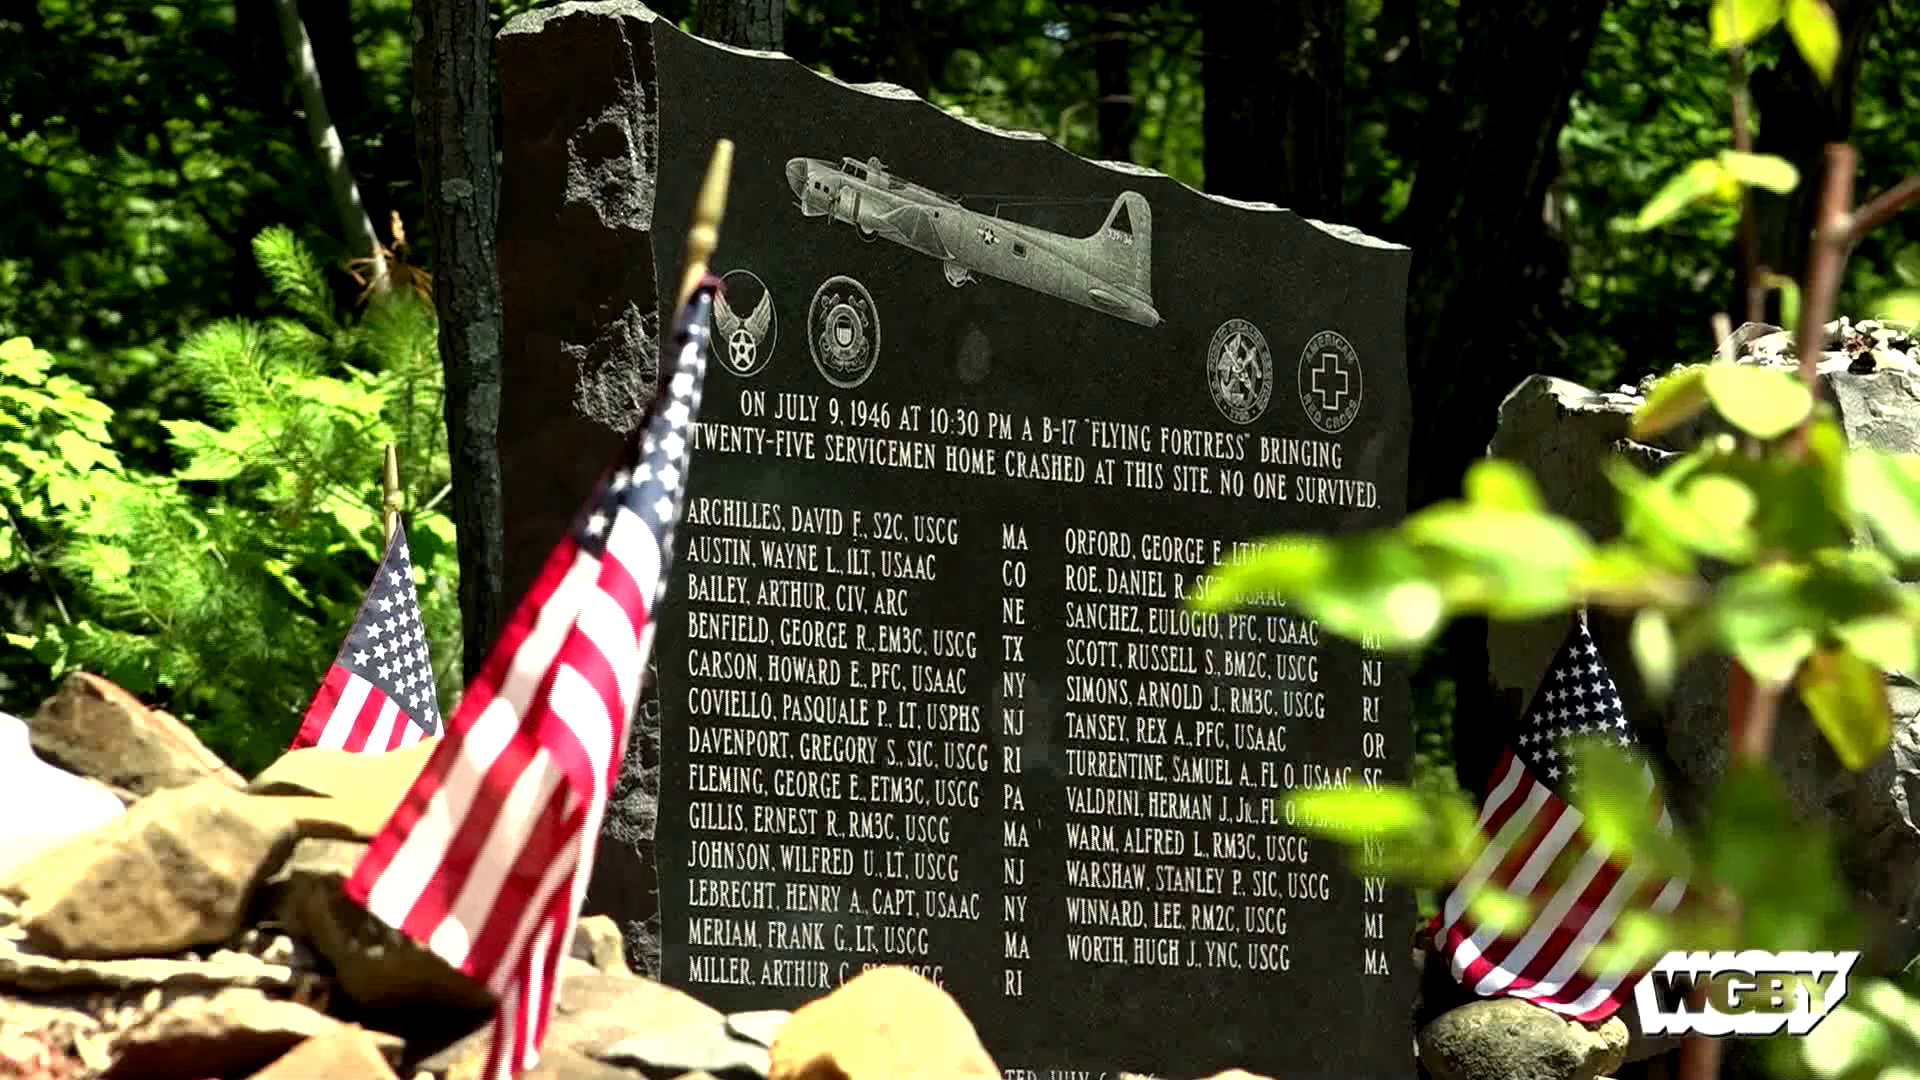 Friends & family of the victims of the Mt. Tom B-17 crash gathered to mark the 72nd anniversary of the accident, which killed 25 returning WWII servicemen.